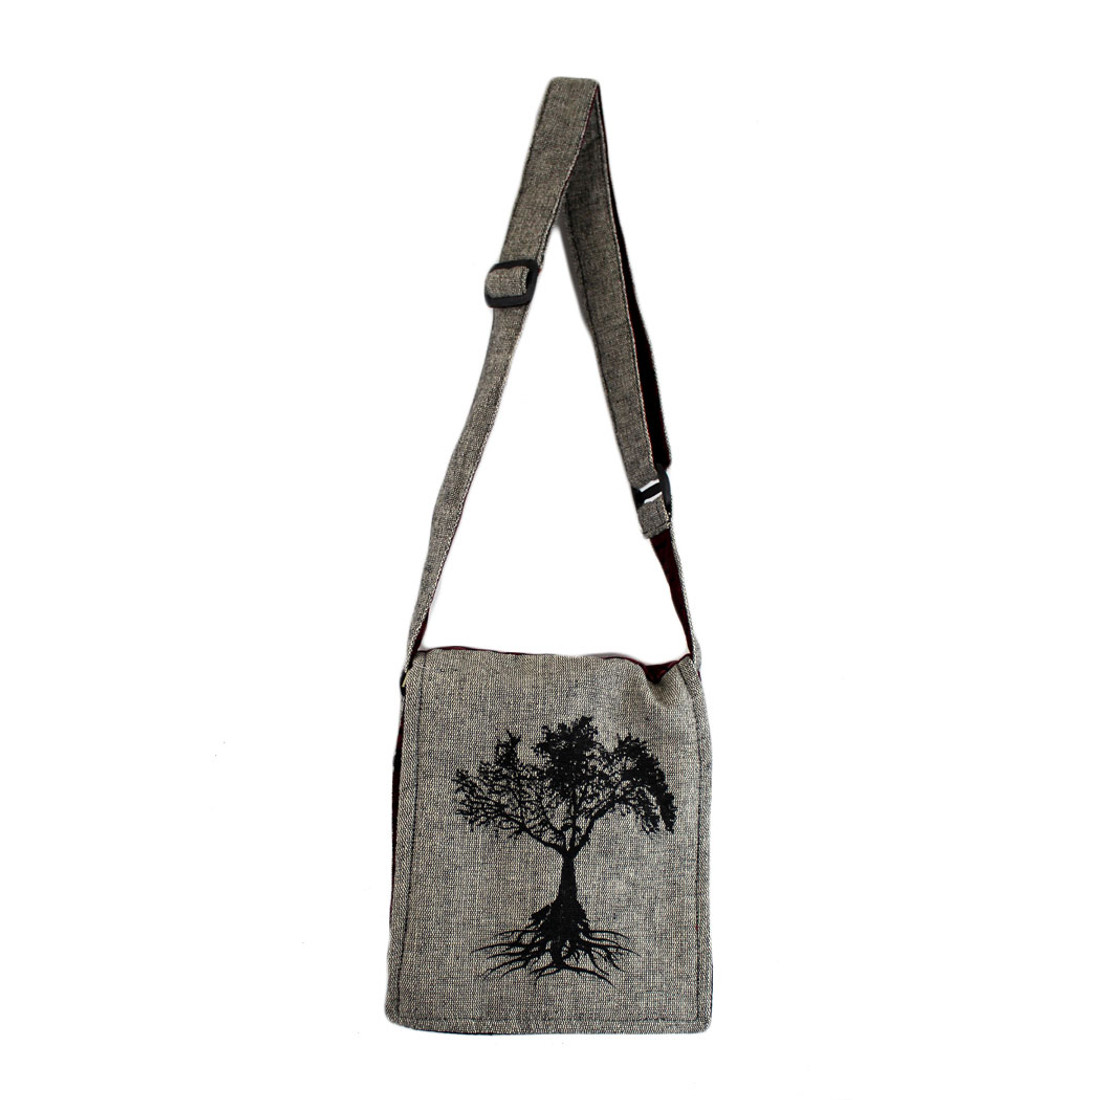 Small Gray Cotton Bag Purse with Tree of Life Design